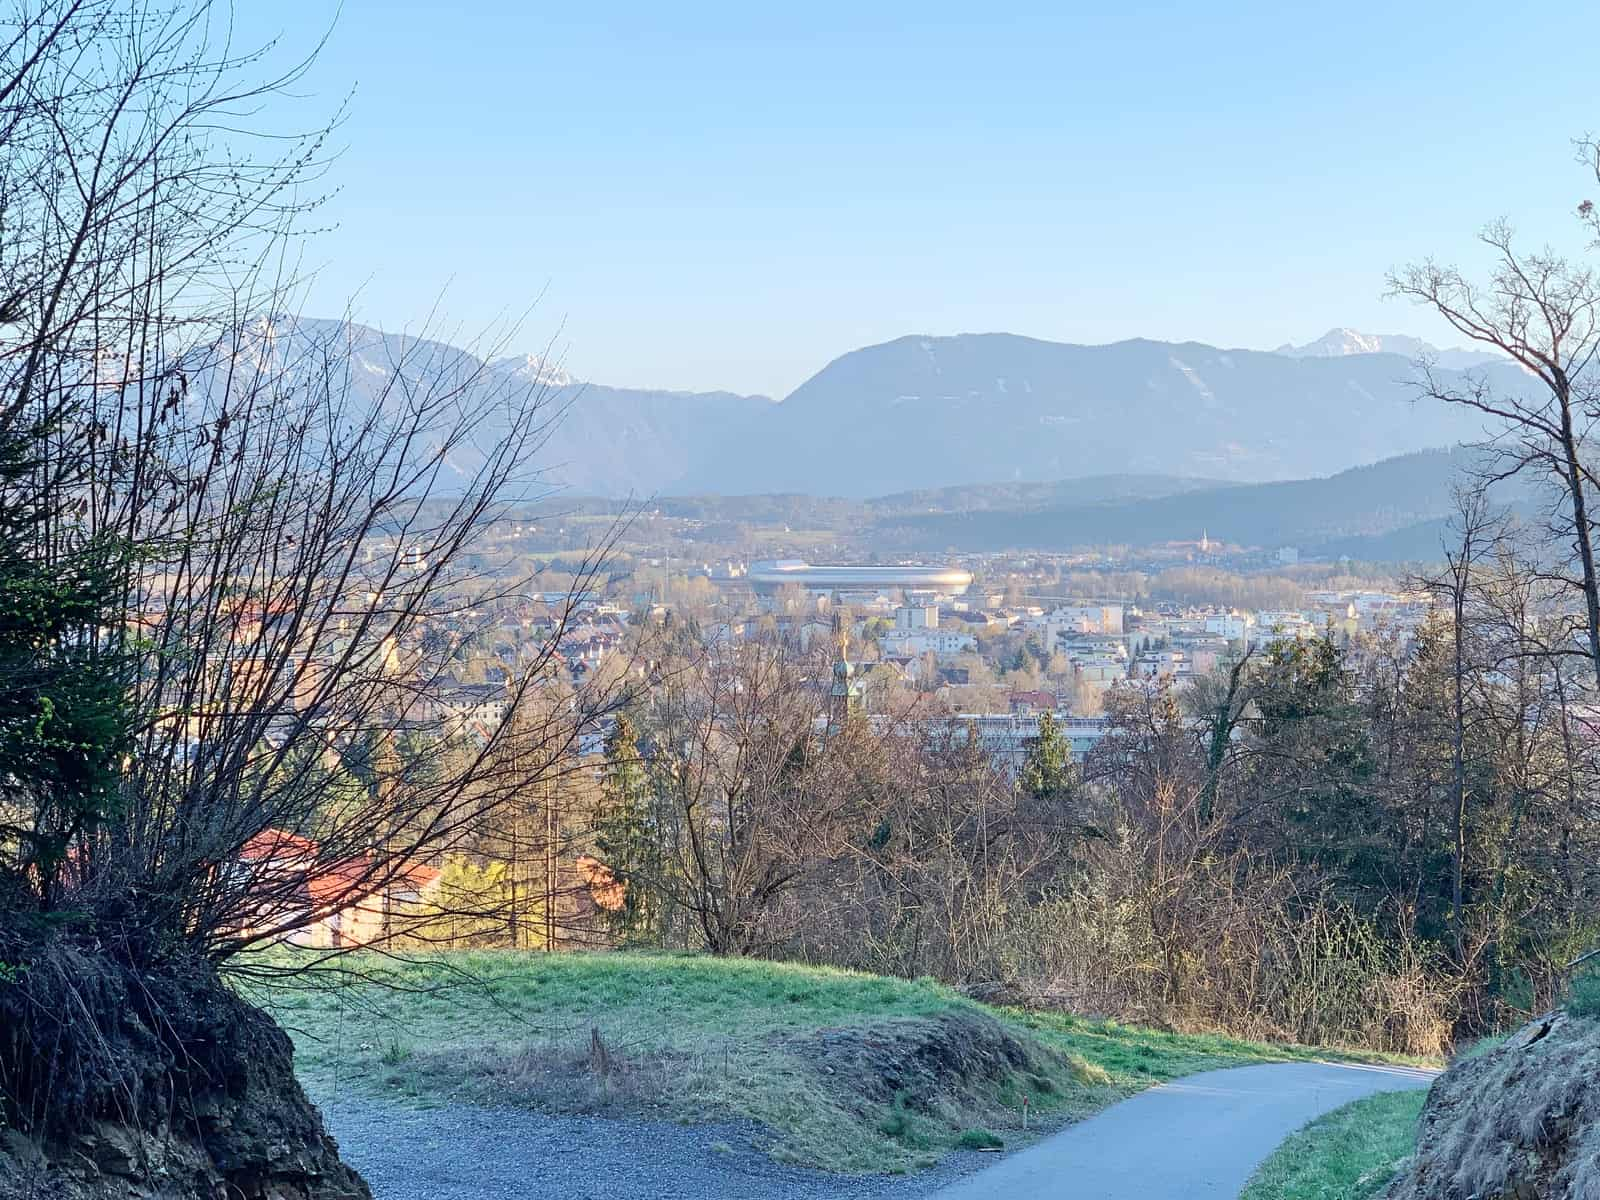 HIKING WITH CHILDREN IN KLAGENFURT